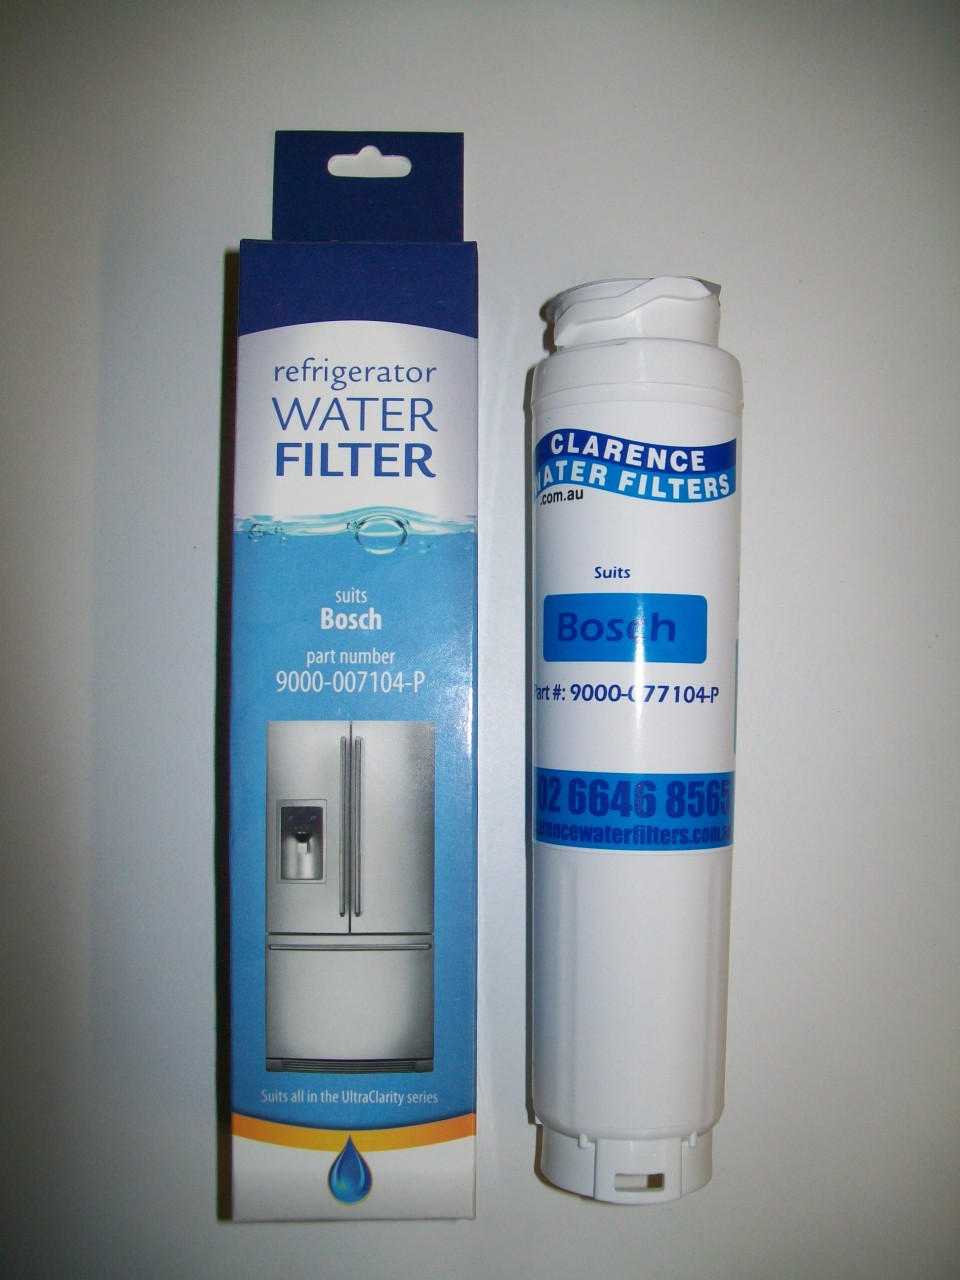 bosch fridge water hookup I have an espring water filter that i want to hook up to my fridge to make filtered ice and water hooking up water filter to fridge report this.